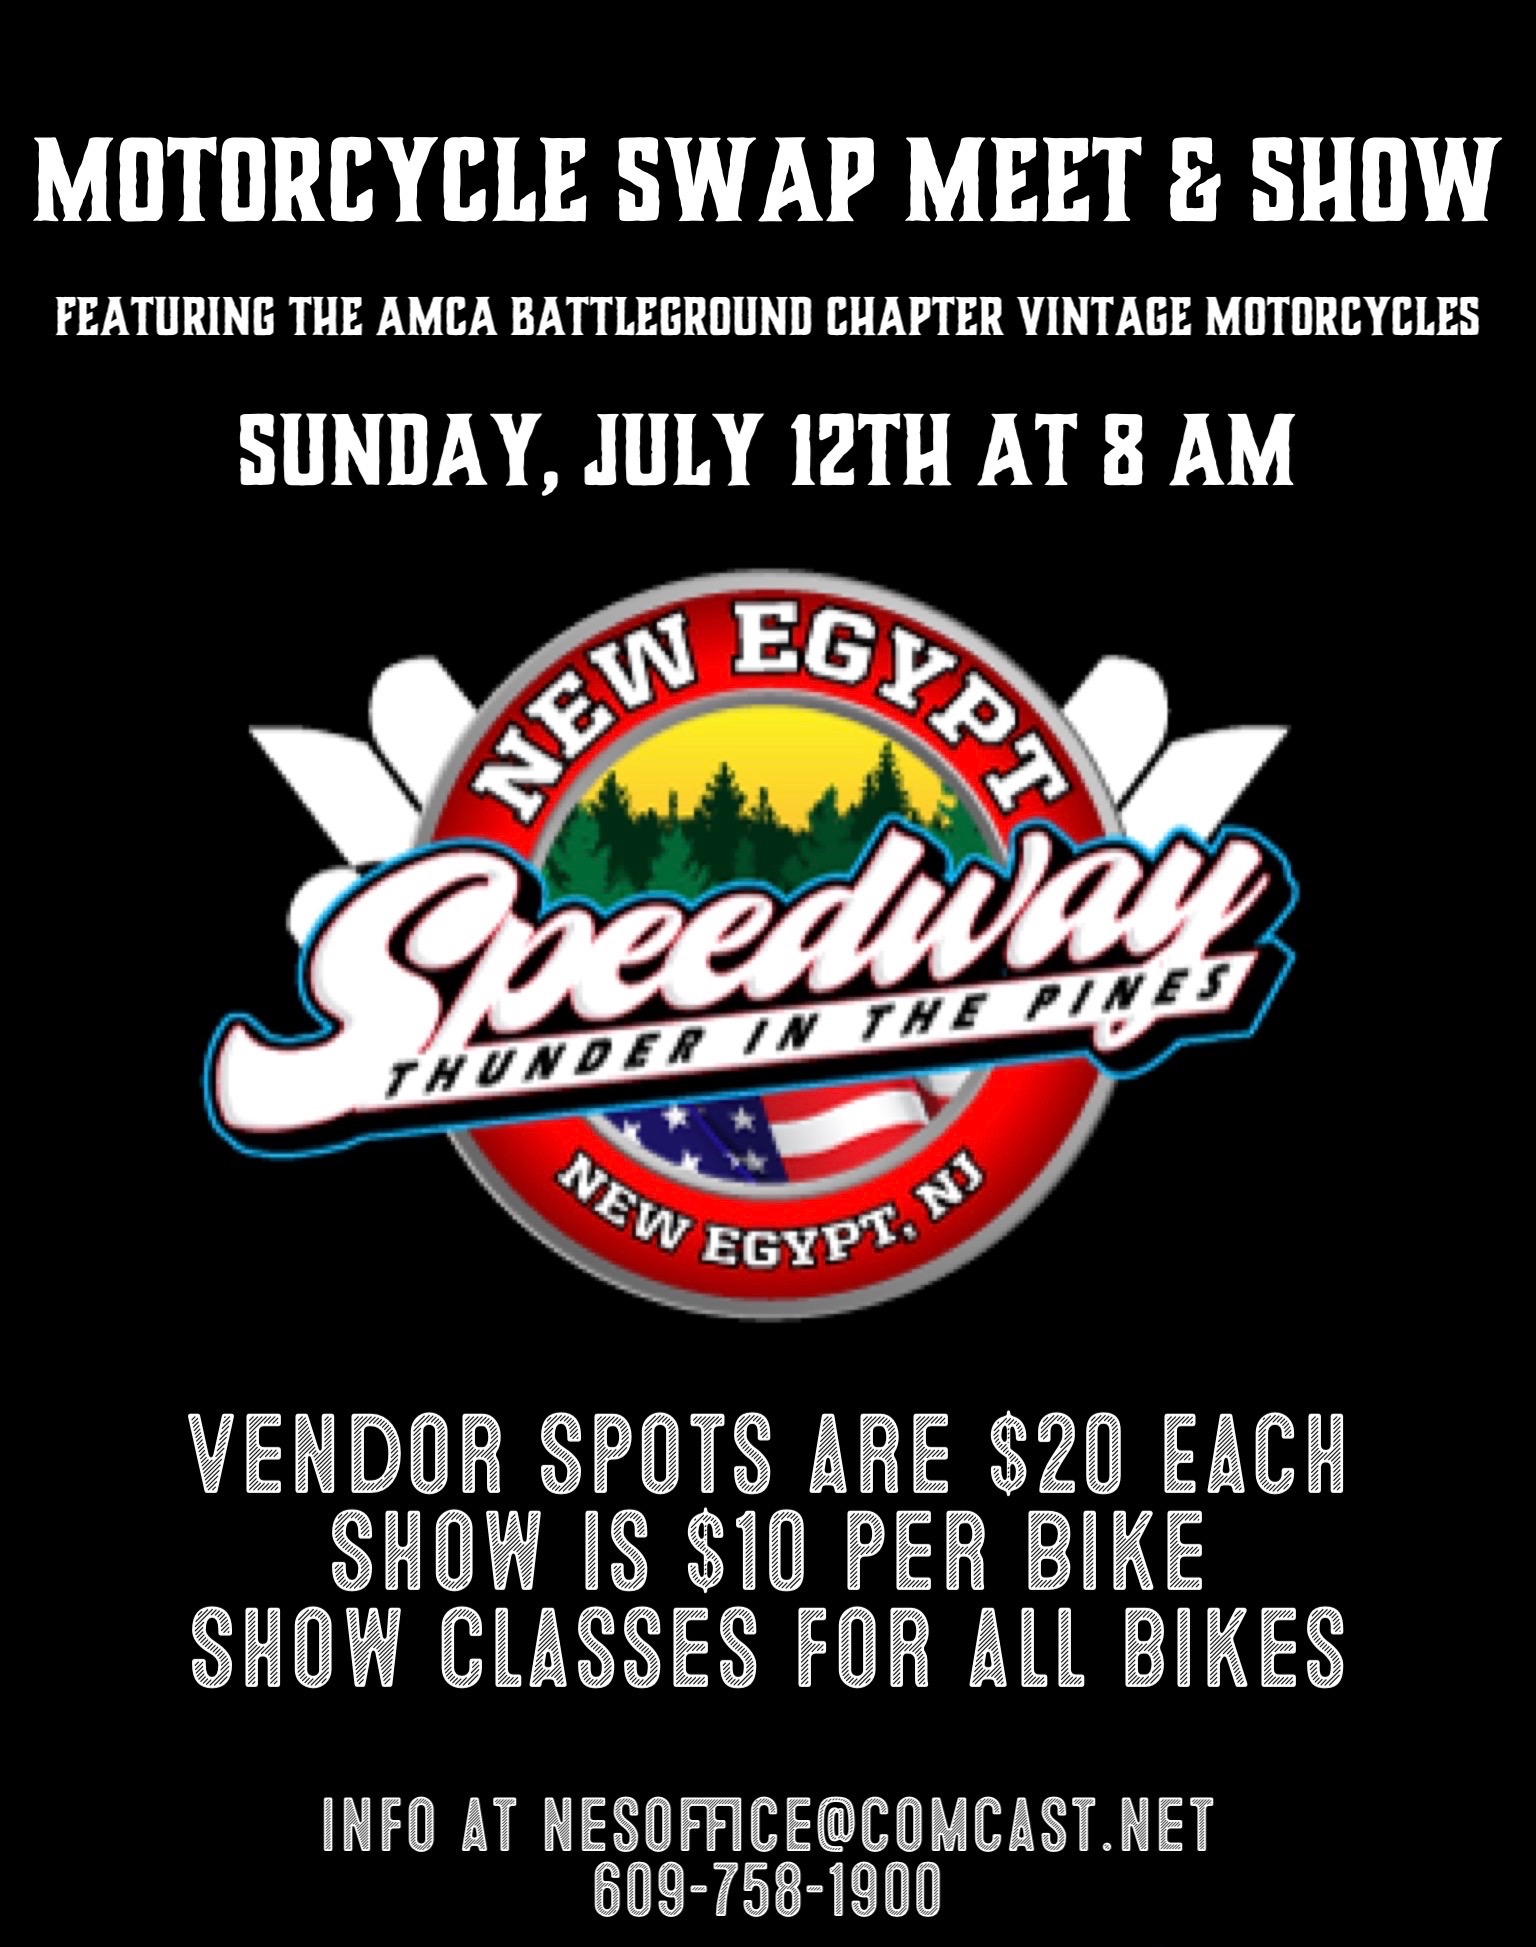 Motorcycle Swap Meet & Show July 12th